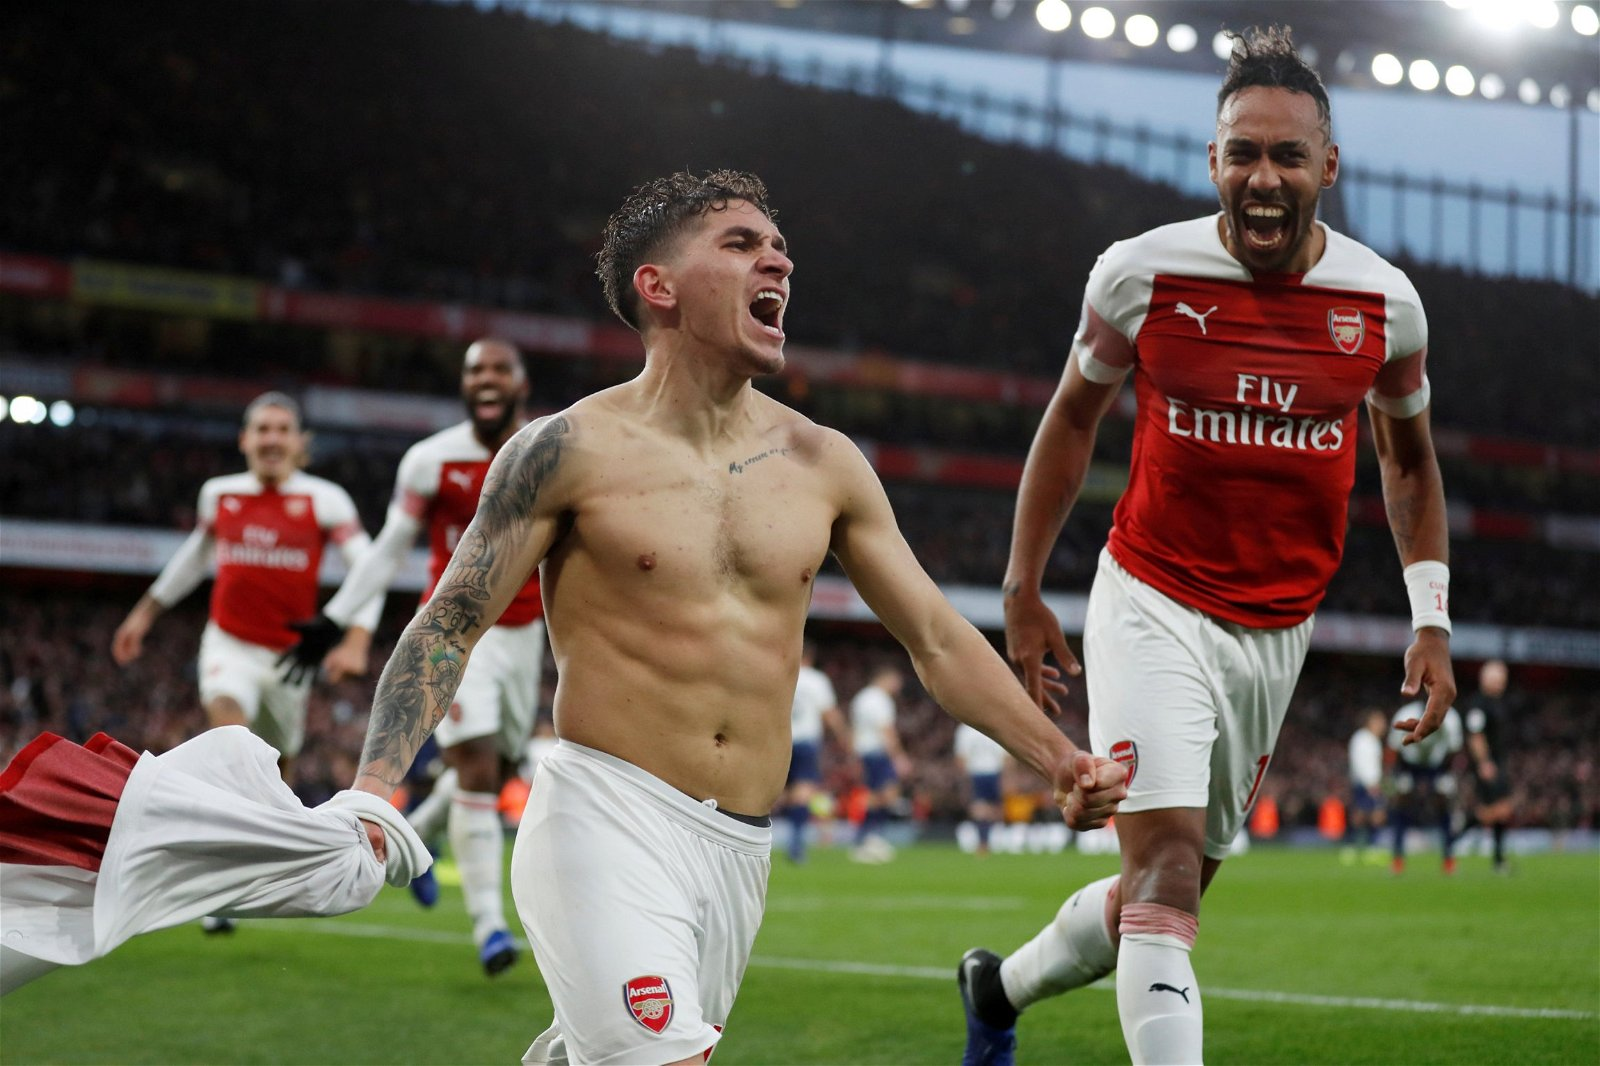 Arsenal's Lucas Torreira celebrates scoring their fourth goal vs Tottenham